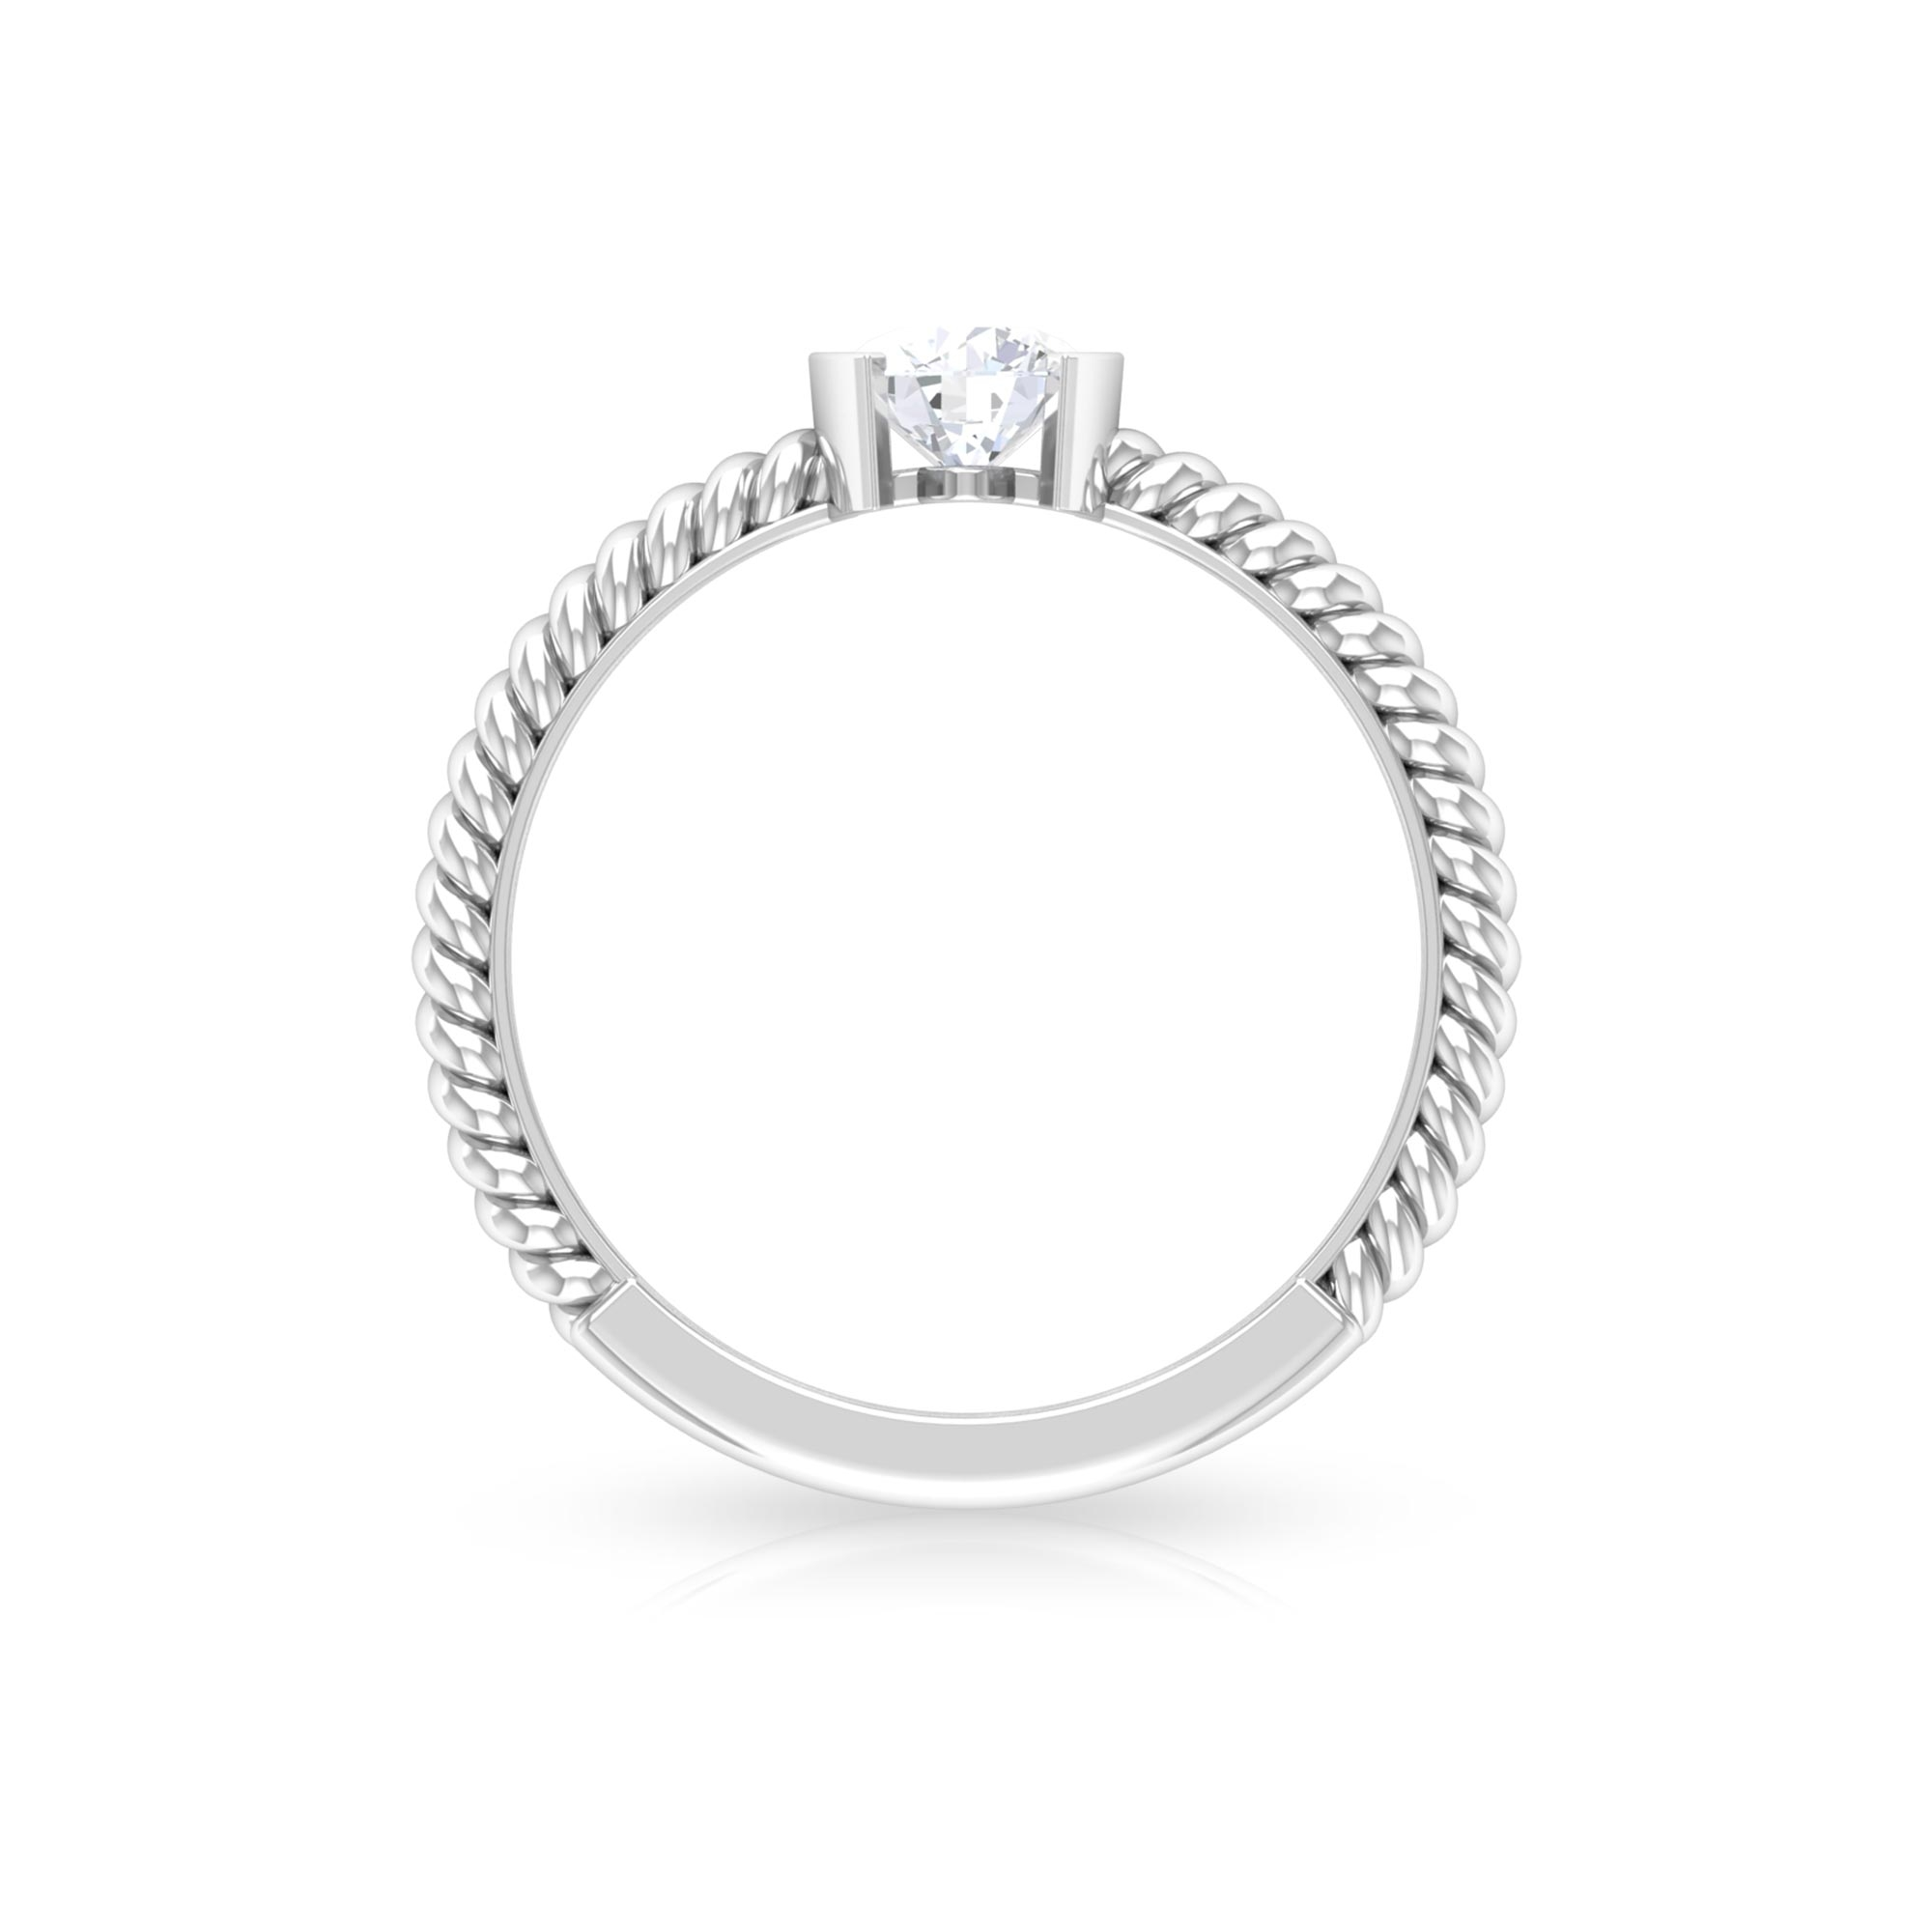 5 MM Round Cut Diamond Solitaire Ring in Half Bezel Setting with Twisted Rope Details